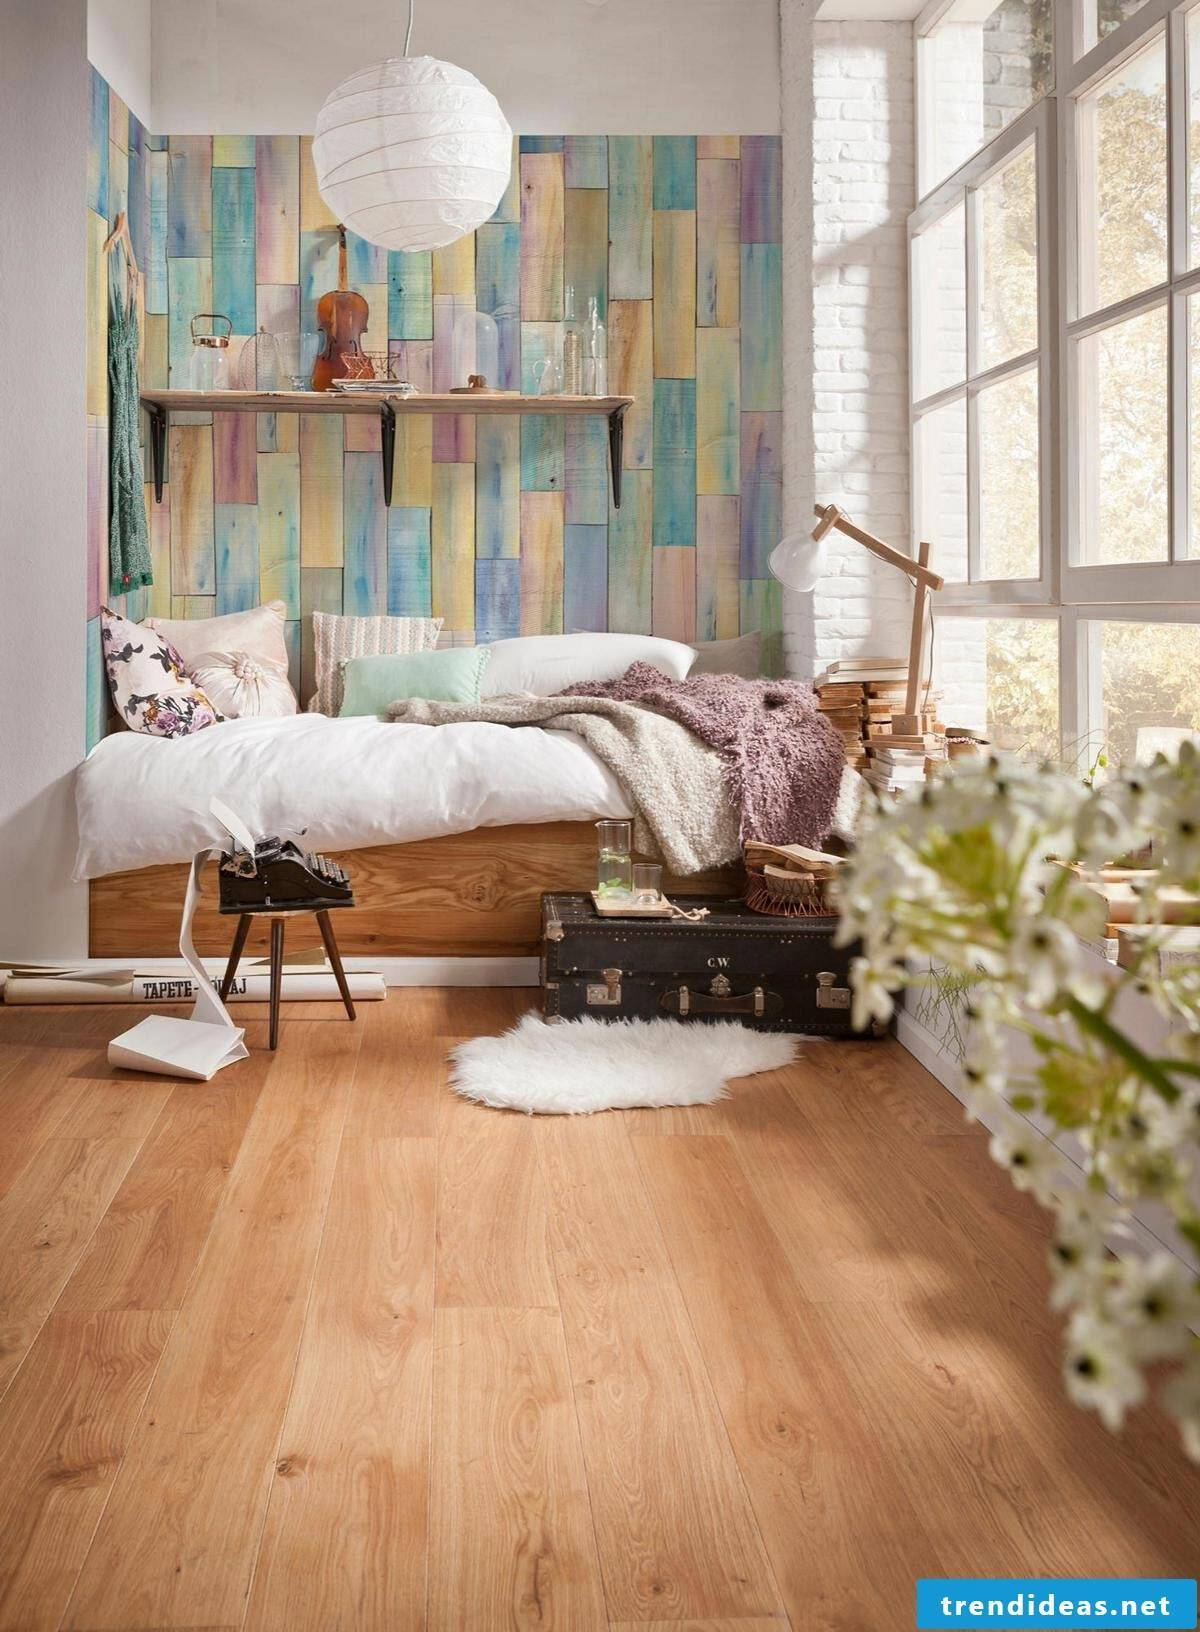 It becomes cuddly with wooden wallpapers!